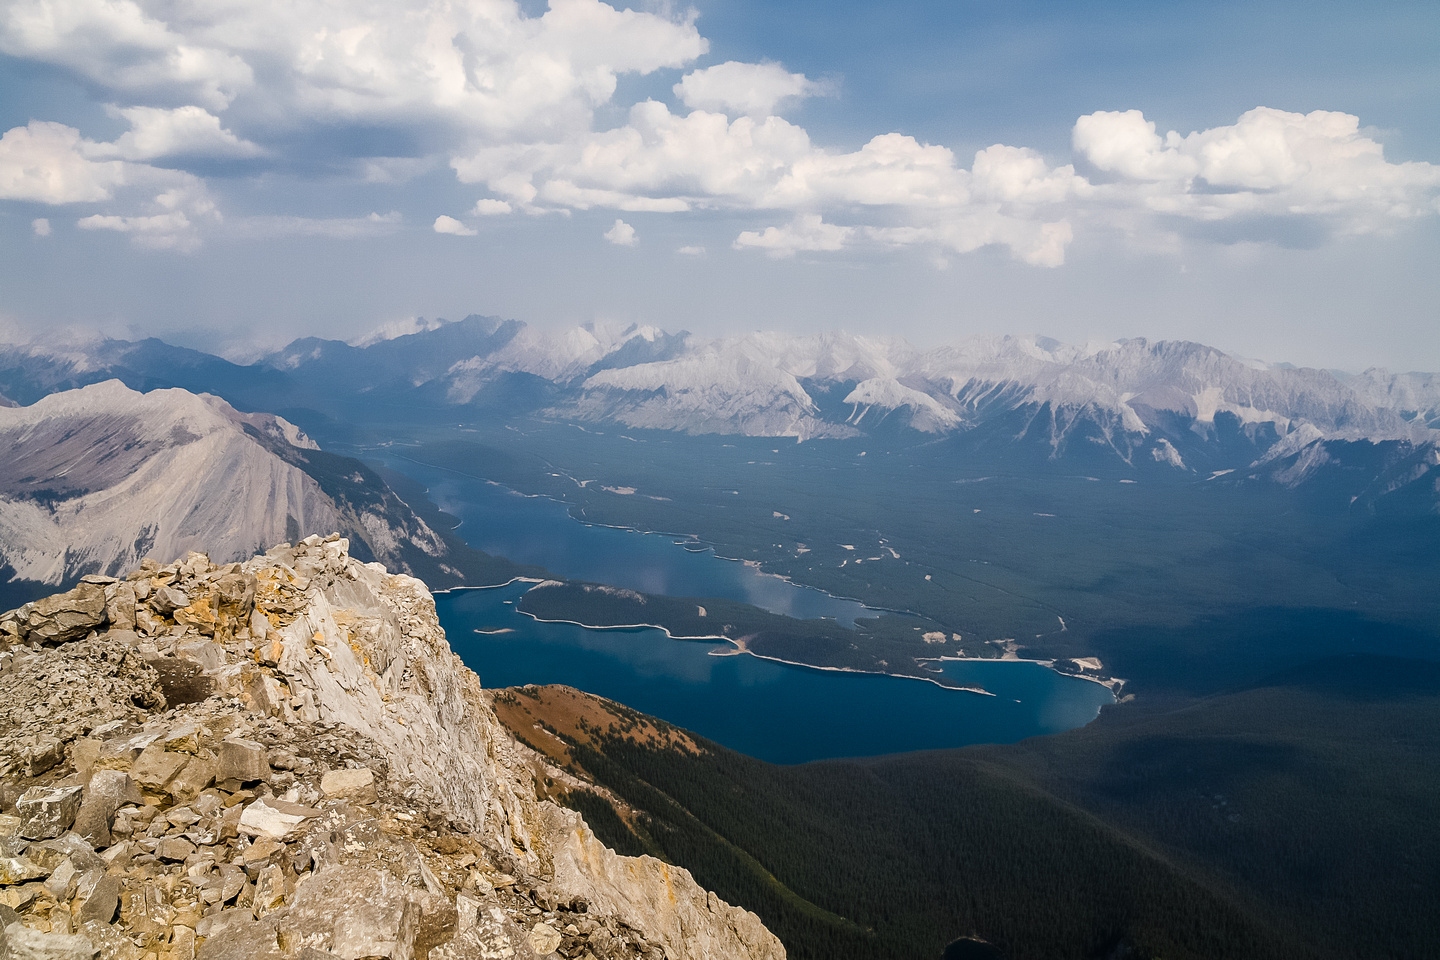 Another view over the Upper and Lower Kananaskis Lakes (car parked to the right) with the Opal Range beyond.